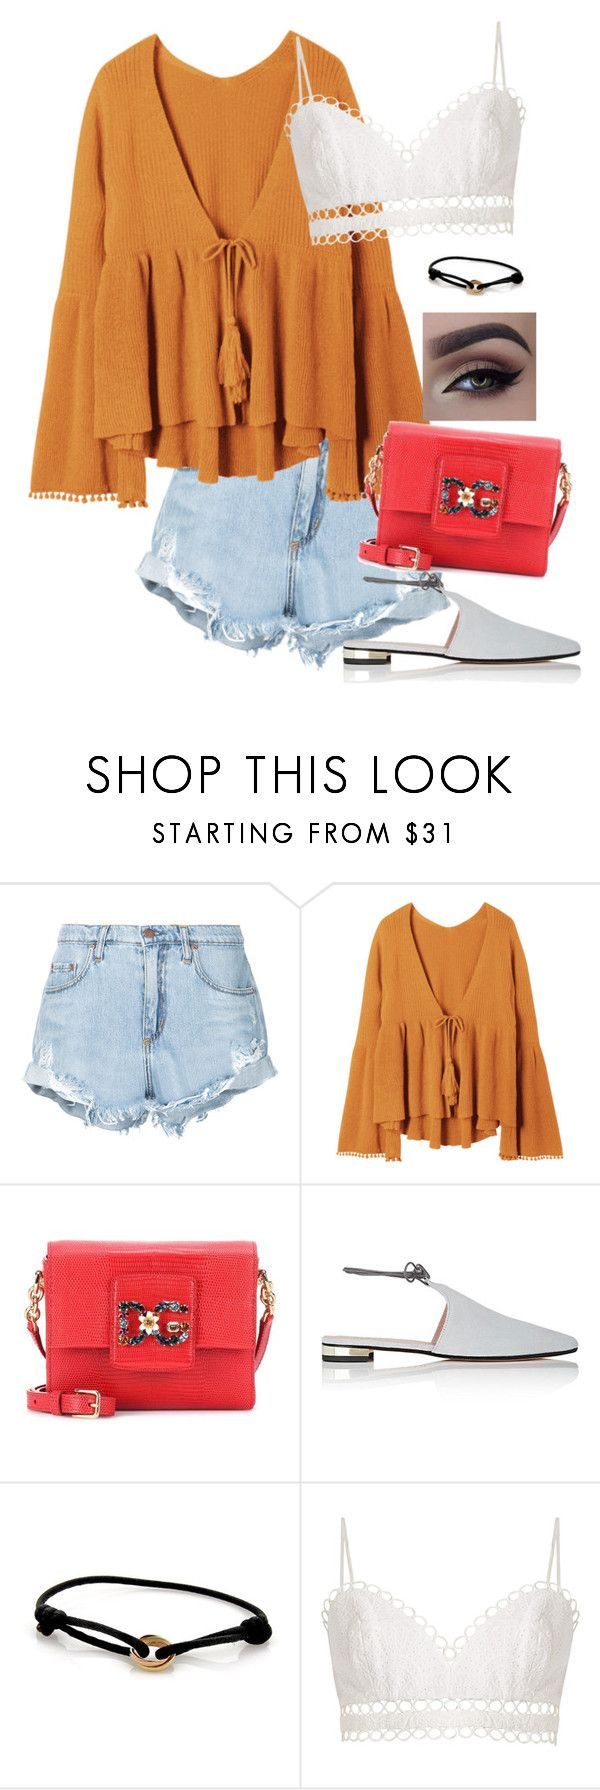 """""""Every day look """" by alwateenalr on Polyvore featuring Nobody Denim, Dolce&Gabbana, Barneys New York, Cartier and Zimmermann"""